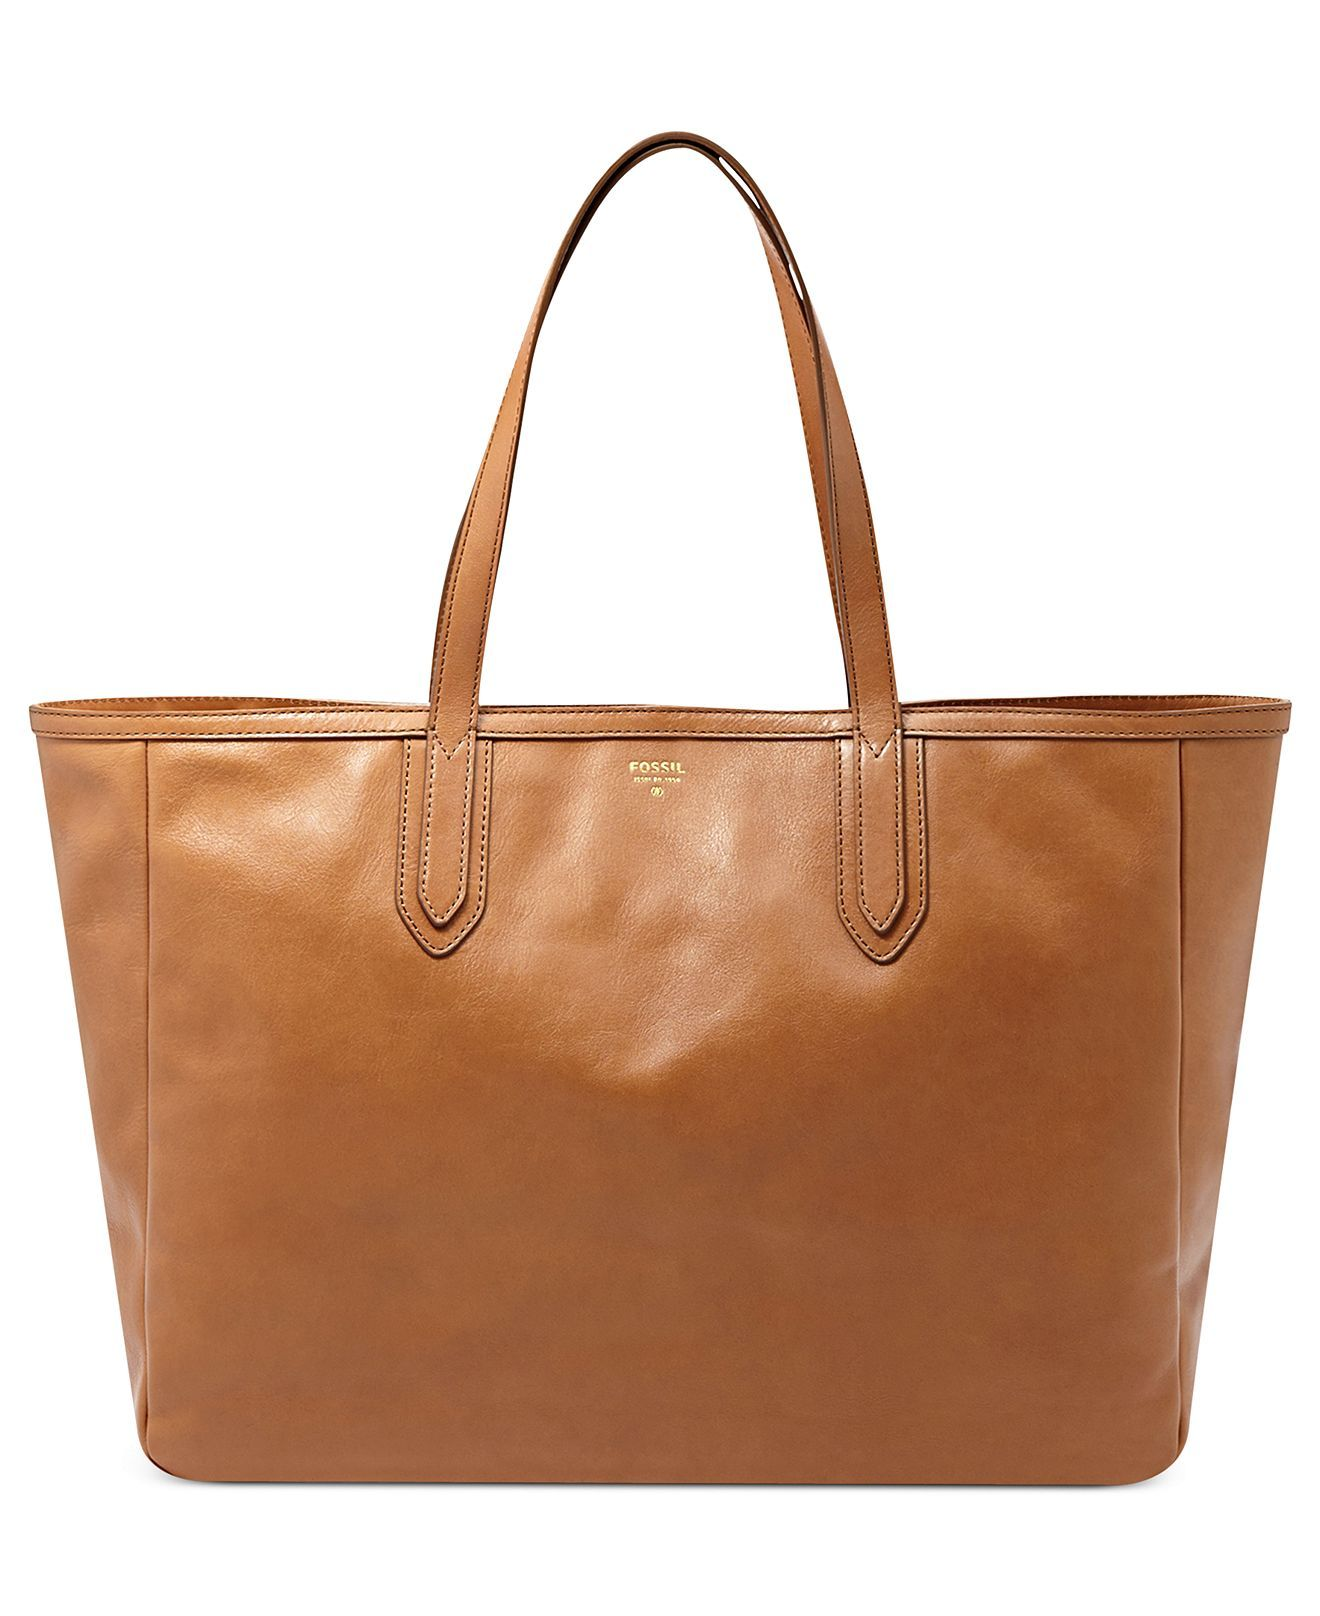 Fossil Handbag Sydney Leather Tote Handbags Accessories Macy S My Style Dream Wardrobe Pinterest Totes And